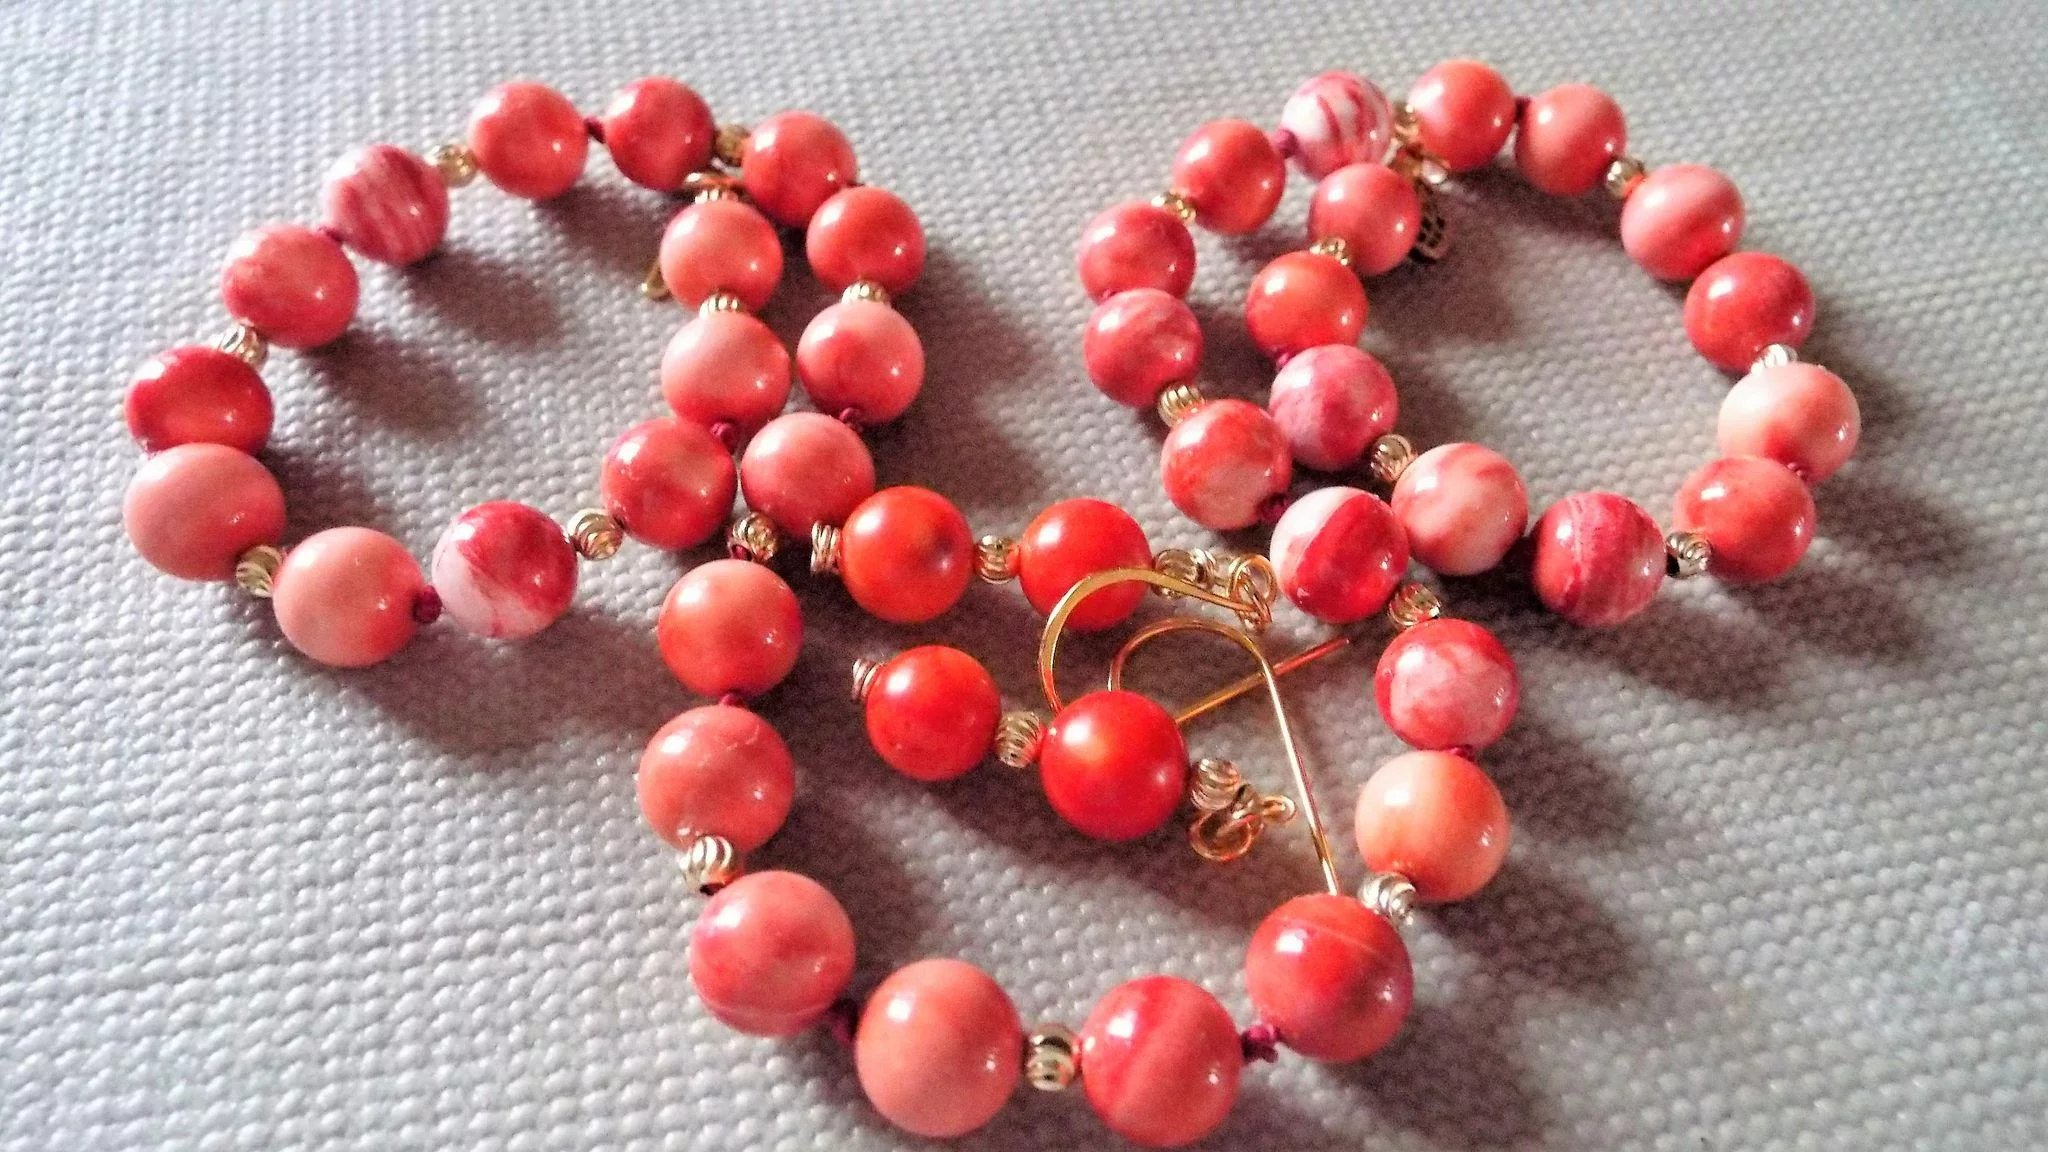 Momo Coral Necklace Plus Earrings Montanasplace Ruby Lane